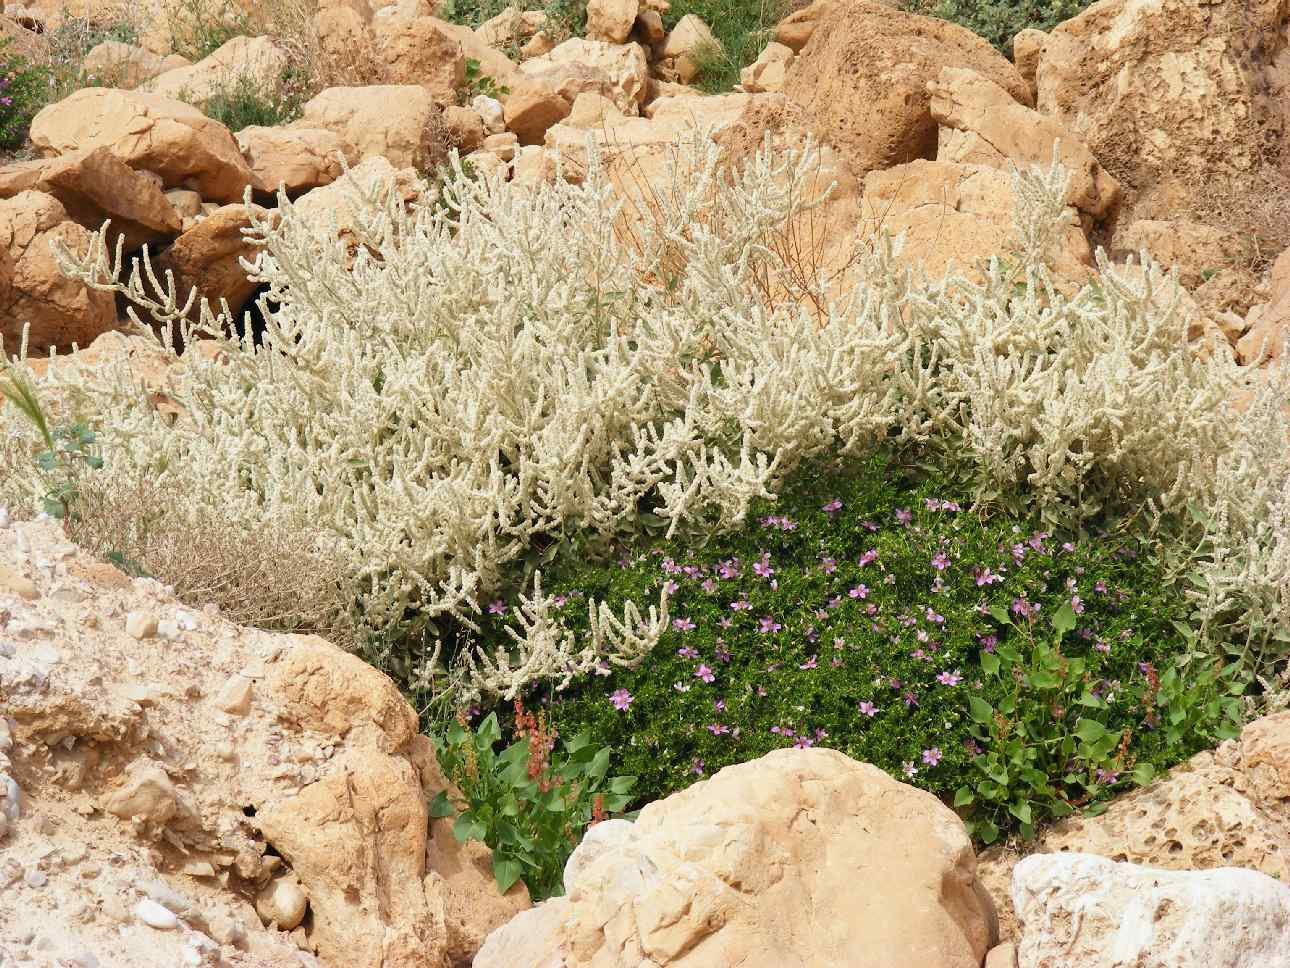 A desert nook full with blooming flowers following Arava 2013 floods